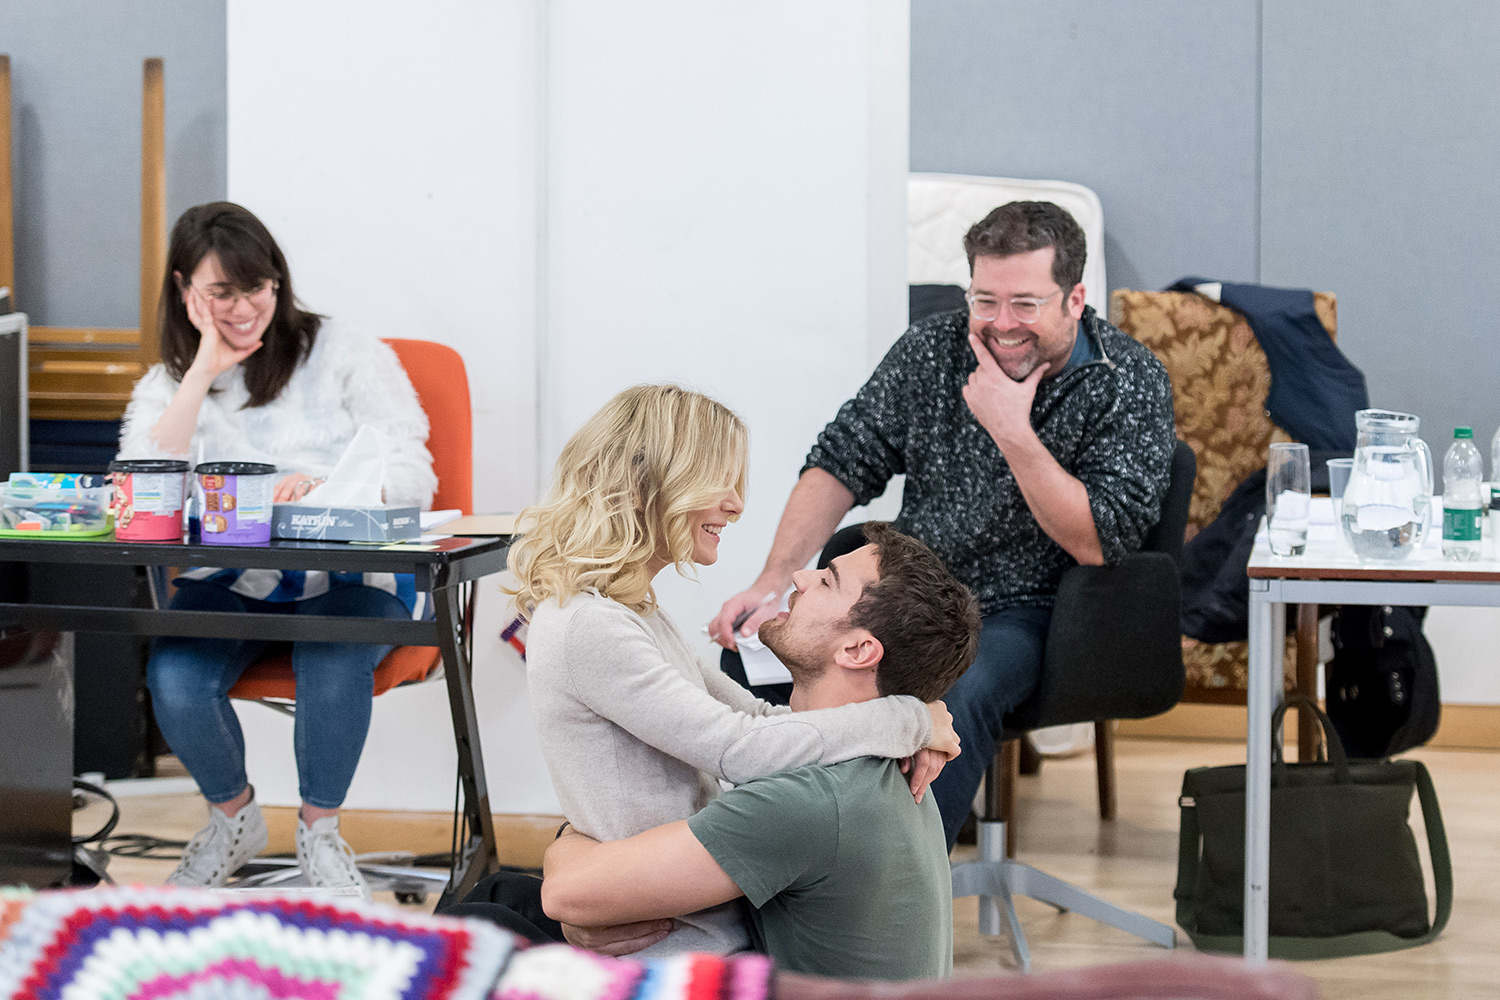 Amelia Fox Naked sex with strangers - hampstead theatre